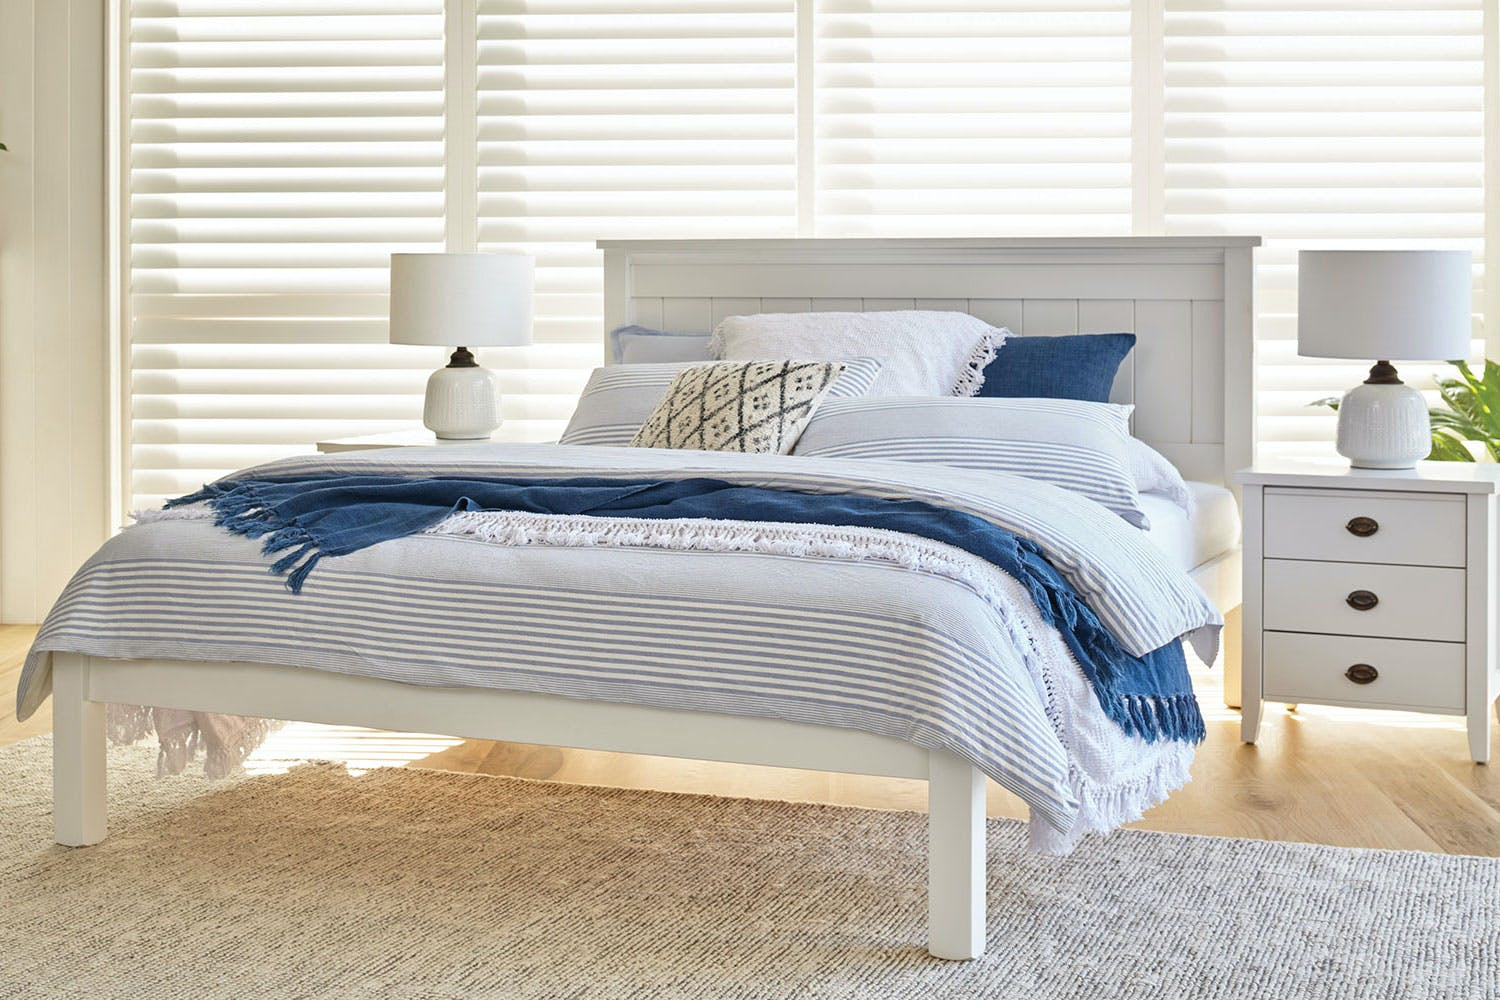 Image of La Resta Queen Bed Frame by Coastwood Furniture